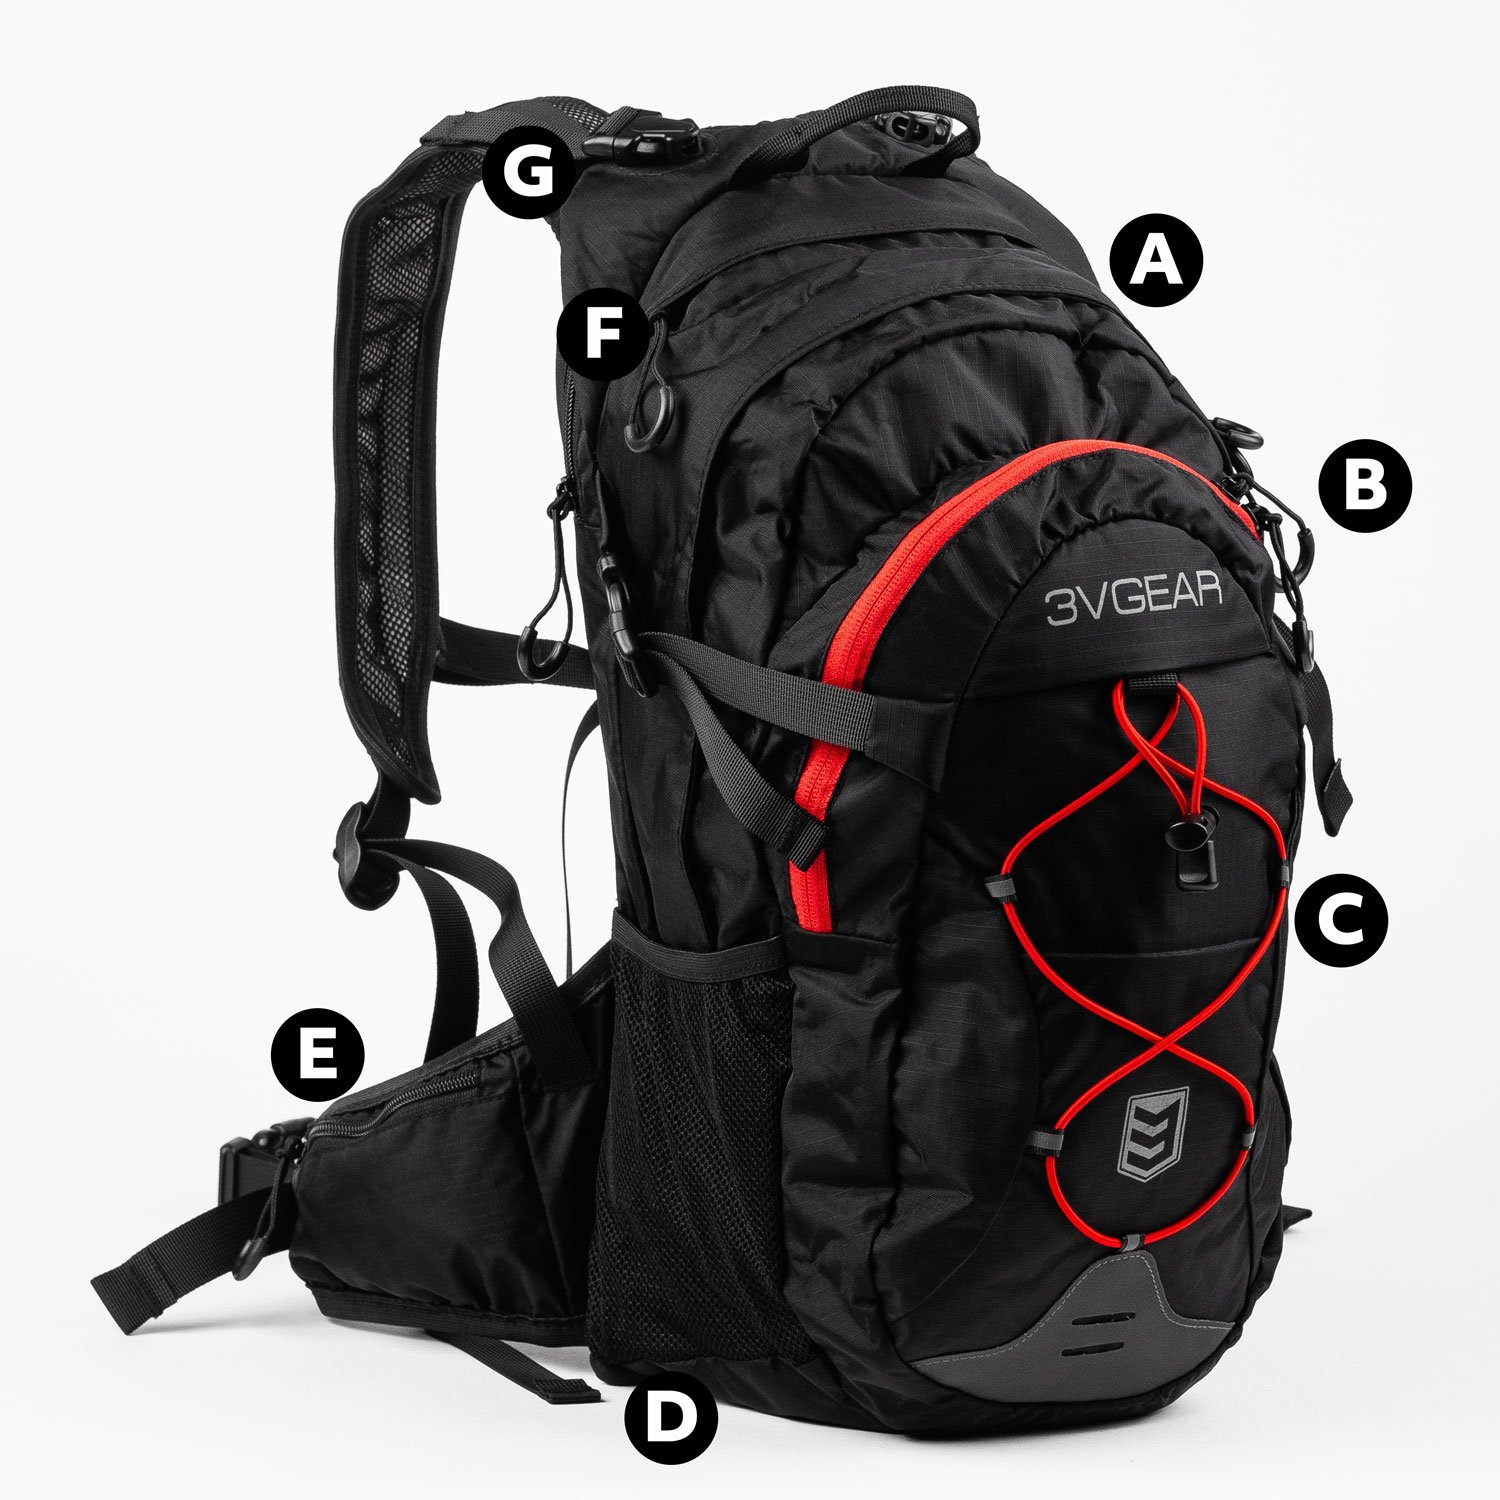 3v gear surge hydration backpack features